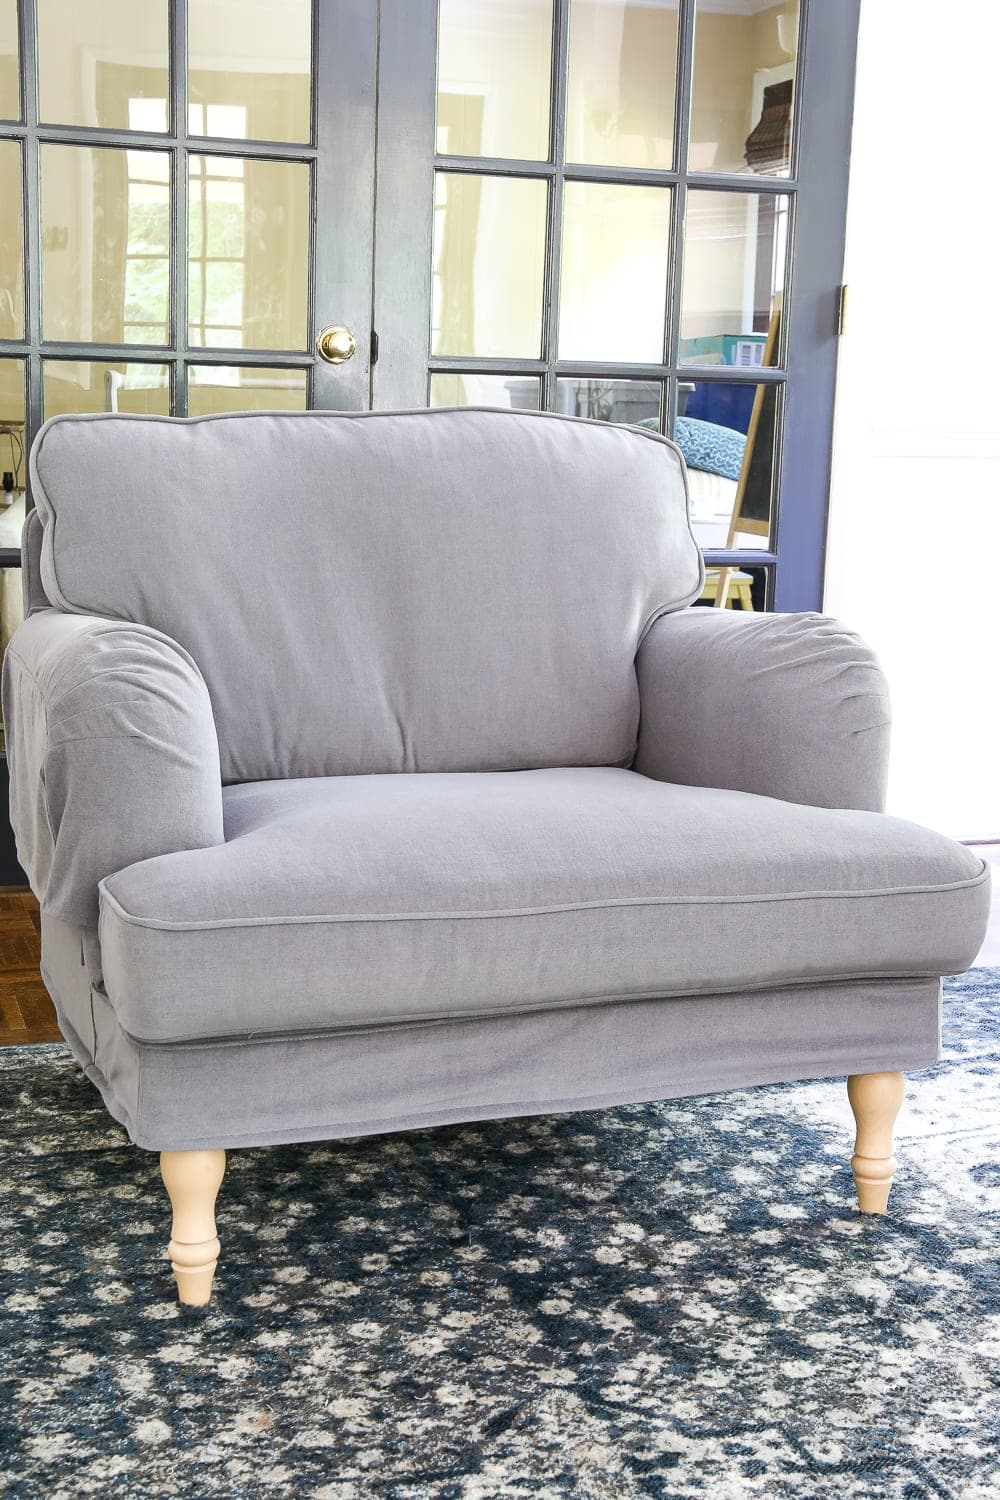 Captivating New IKEA Sofa And Chairs And How To Keep Them Clean | Blesserhouse.com